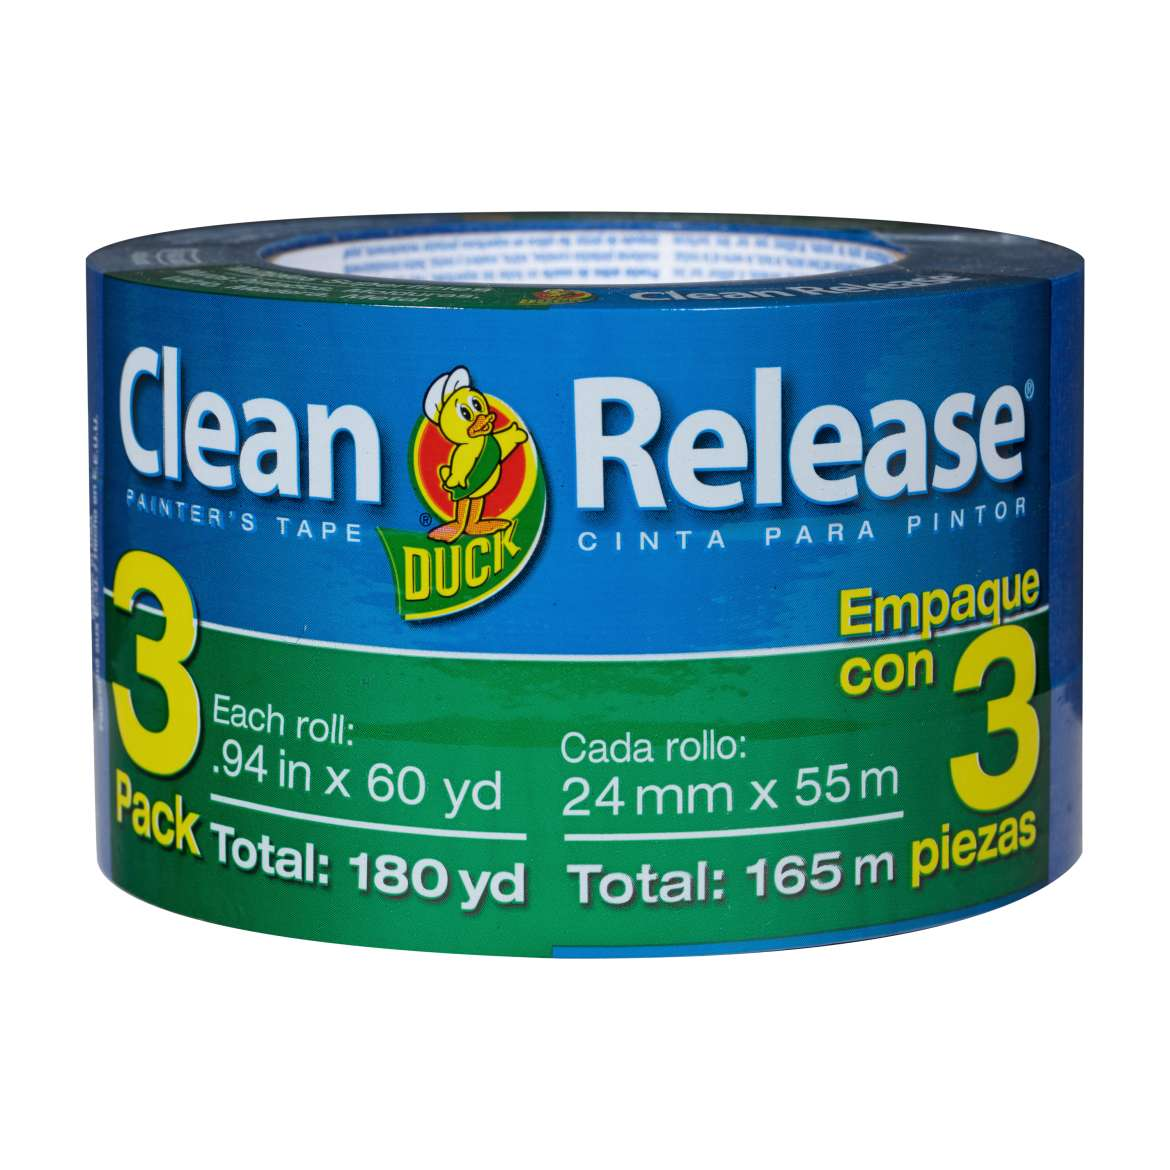 "Duck Brand Clean Release Painter's Tape, 0.94"" x 60 yds, 3 pack"